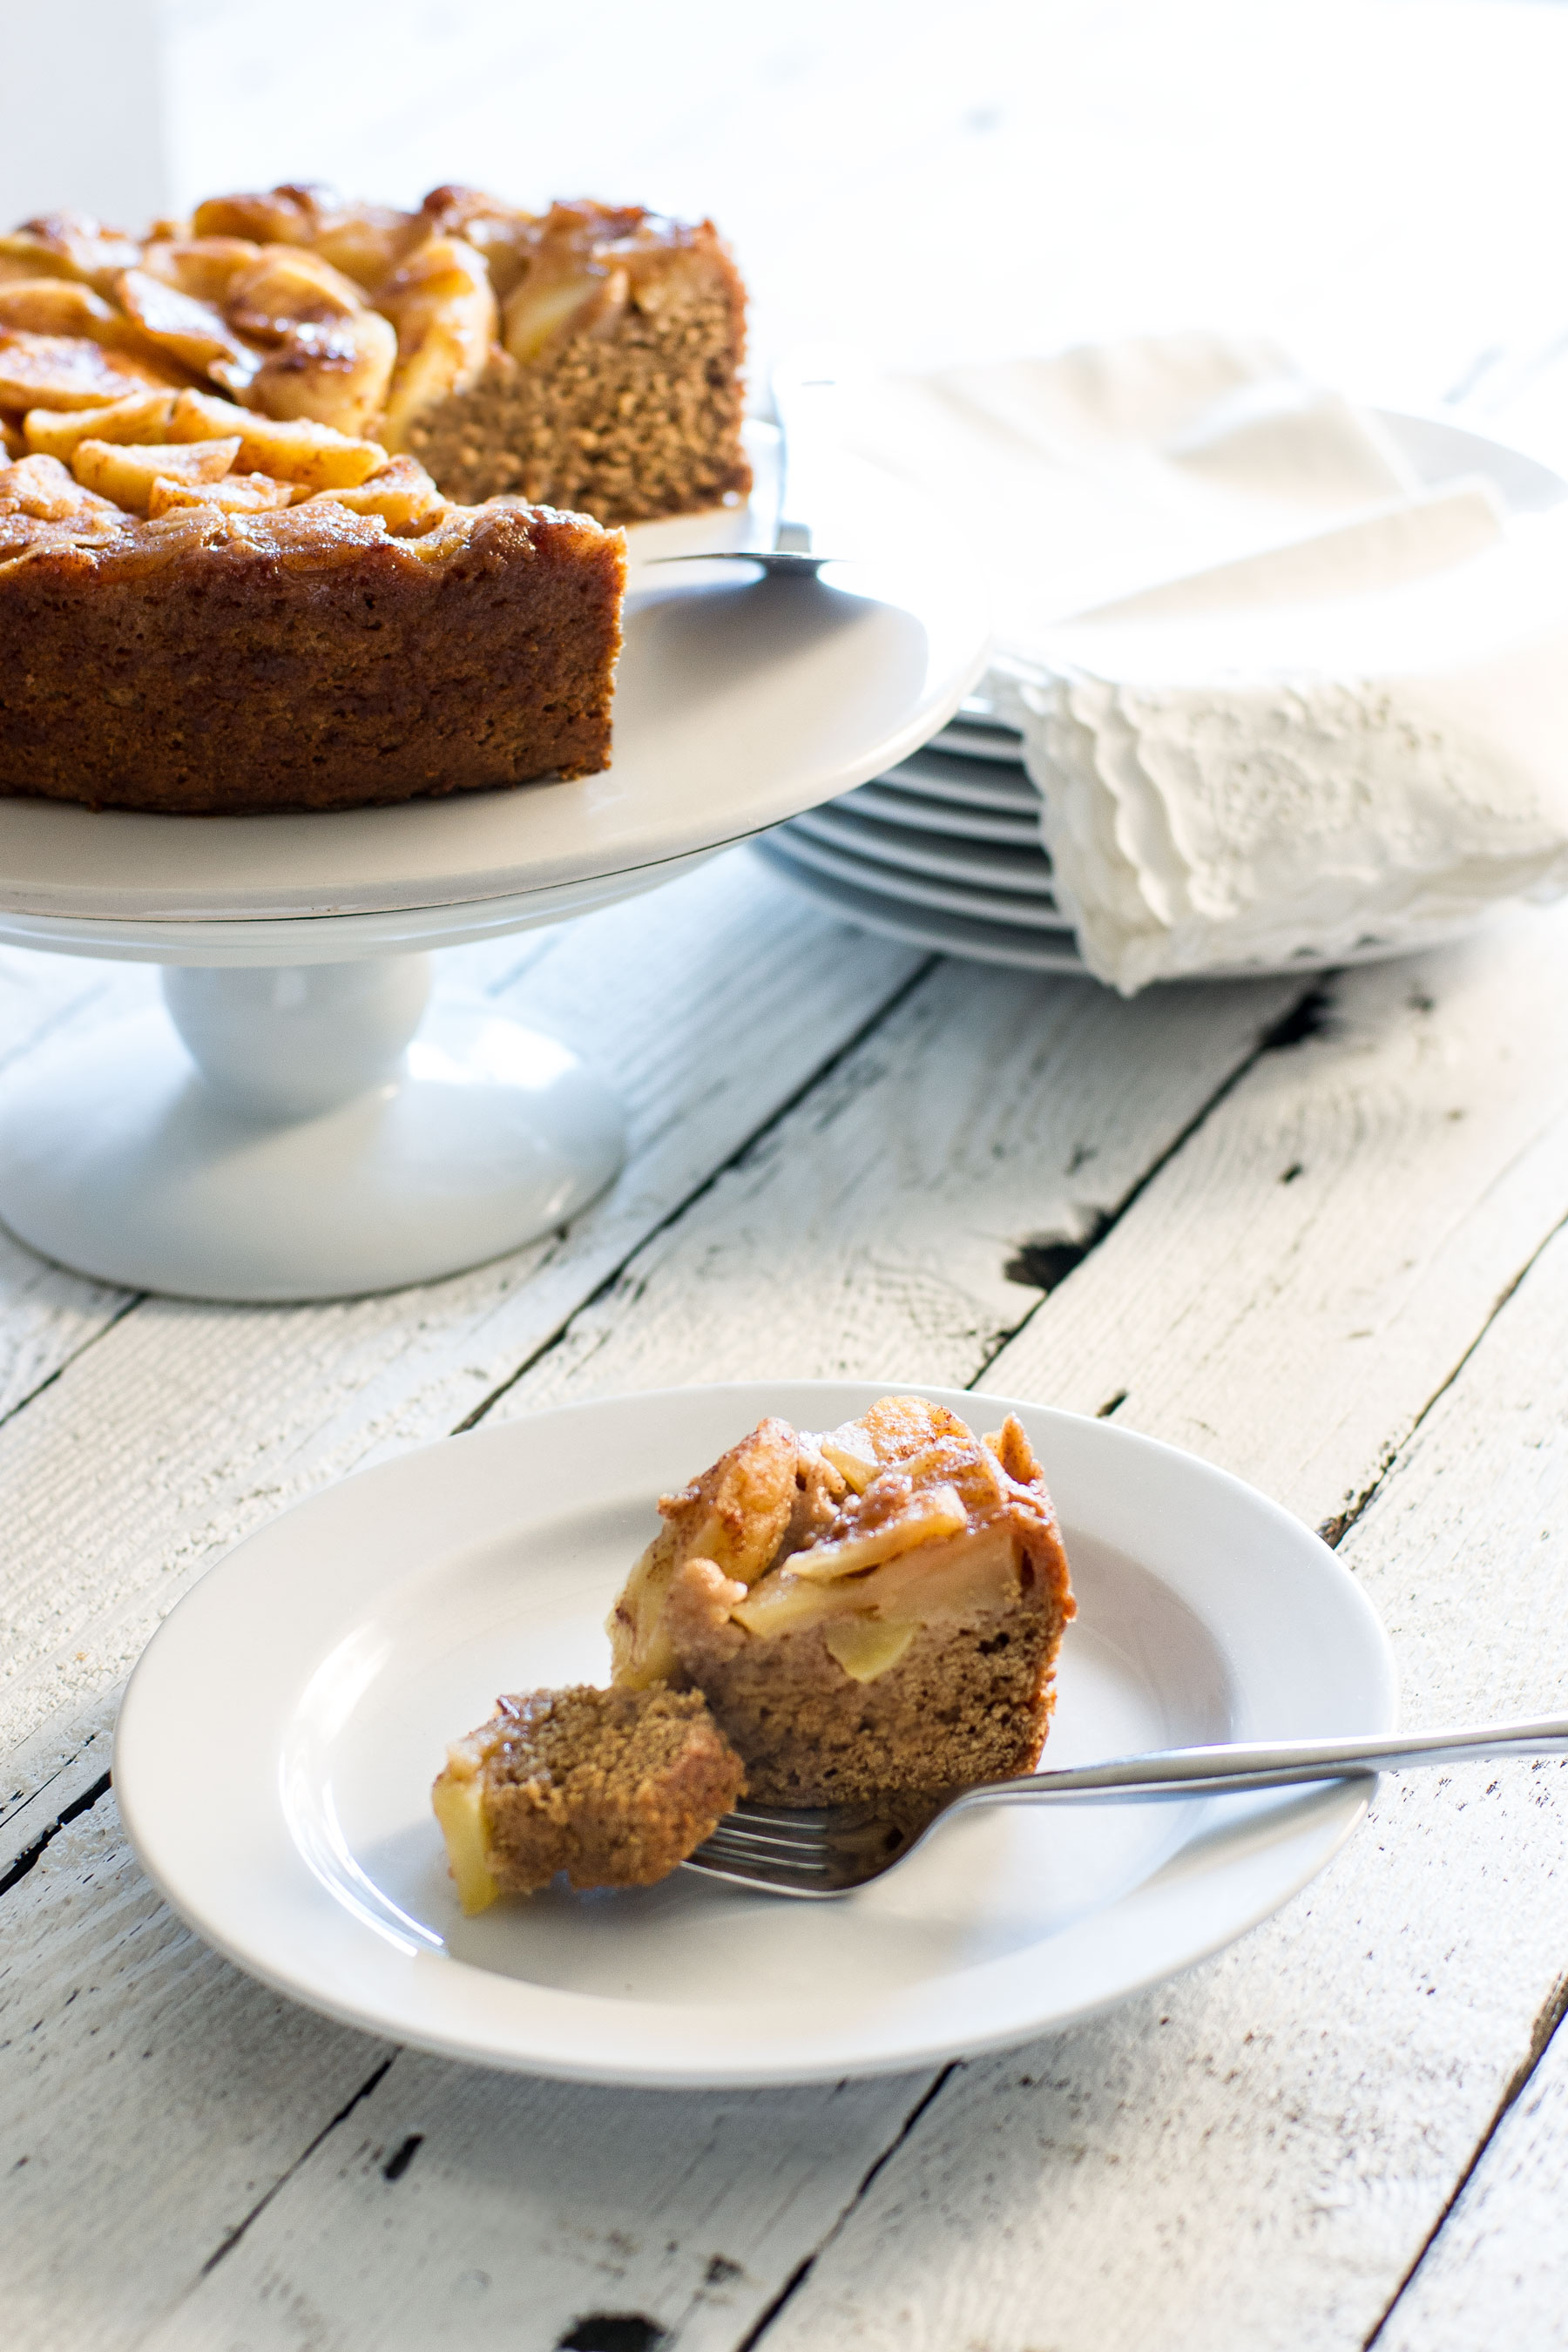 Apple Butter Upside Down Cake by Sam Henderson of Today's Nest